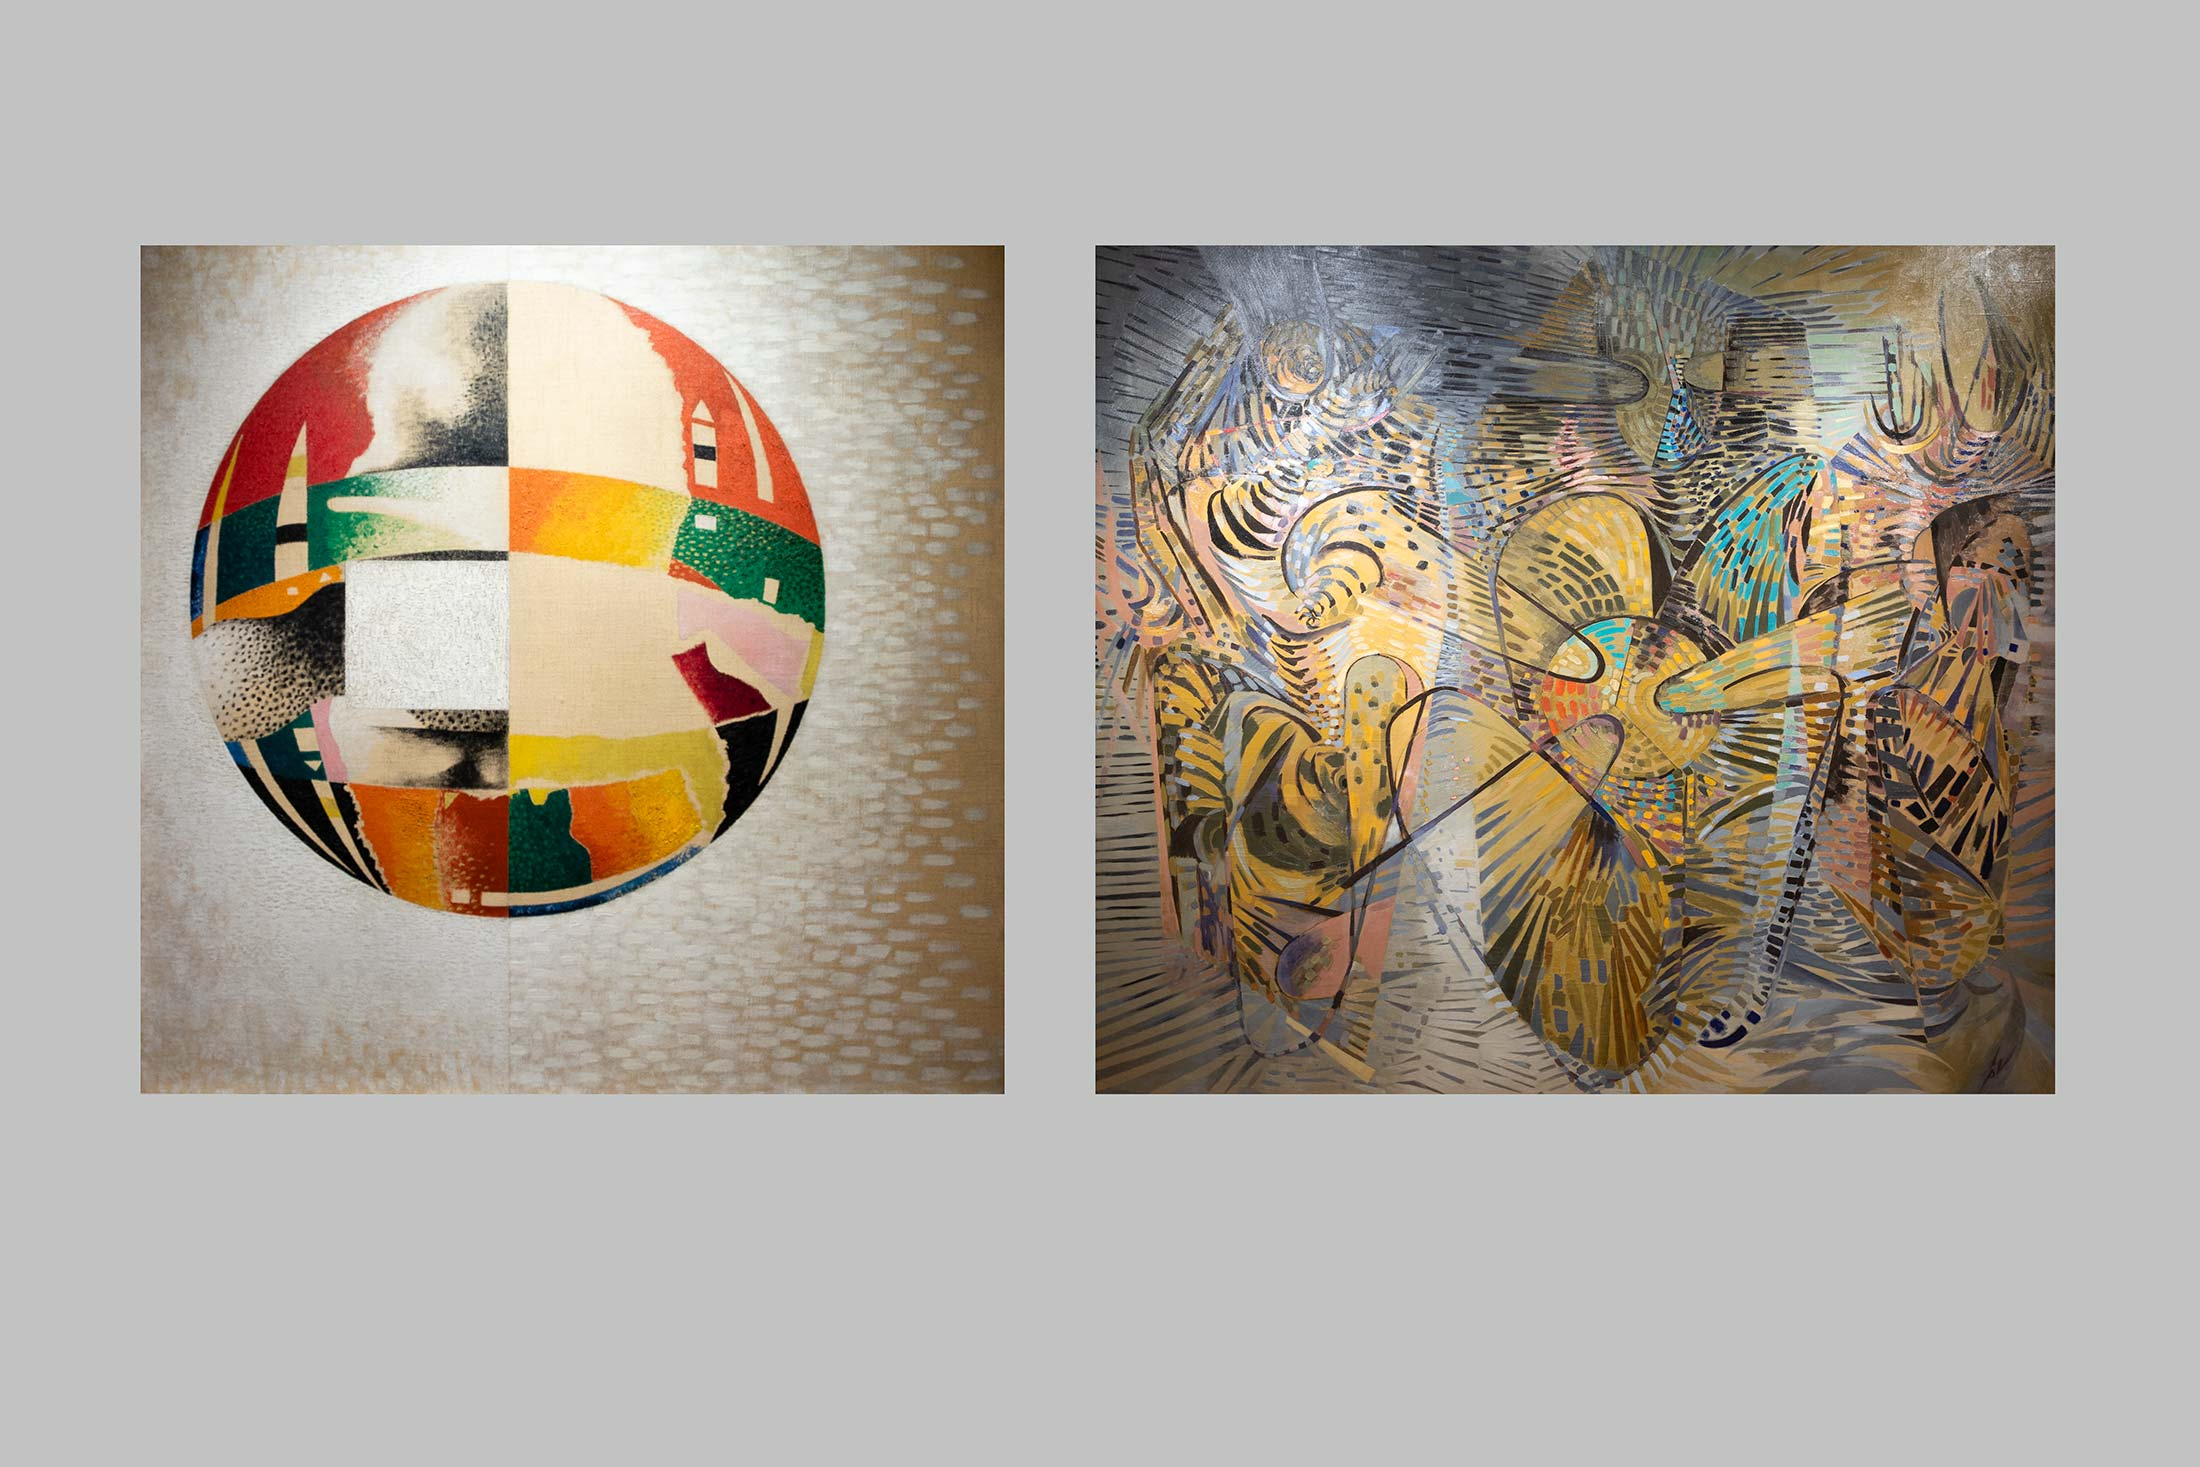 On the left: Nuclear II (1946) by László Moholy-Nagy; on the right: Les Cosmogones (1944), by Wolfgang Paalen.